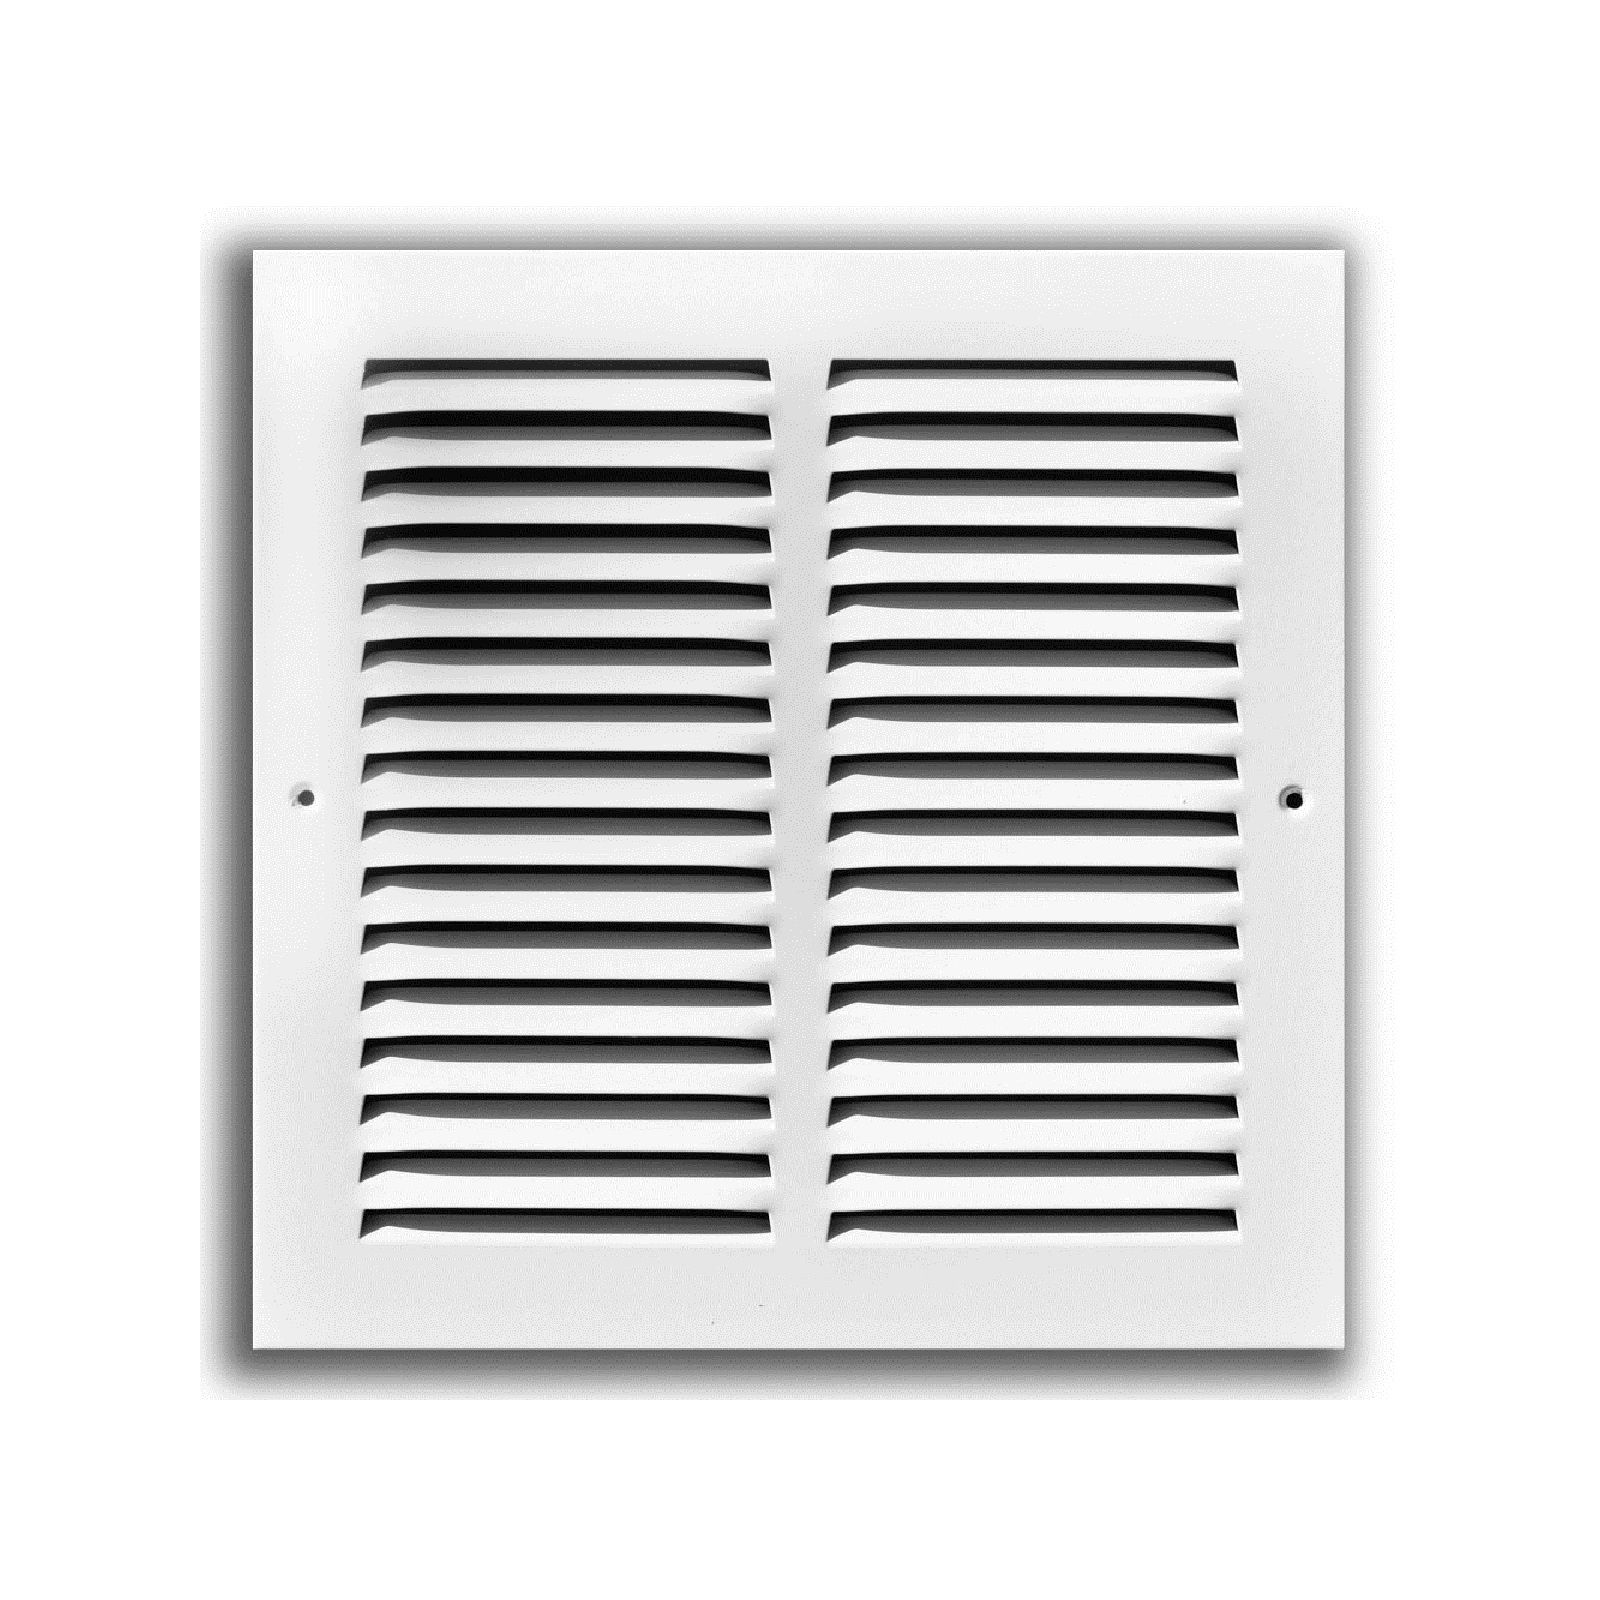 "TRUaire 170 06X06 - Steel Return Air Grille - 1/2"" Spaced Fin, White, 06"" X 06"""